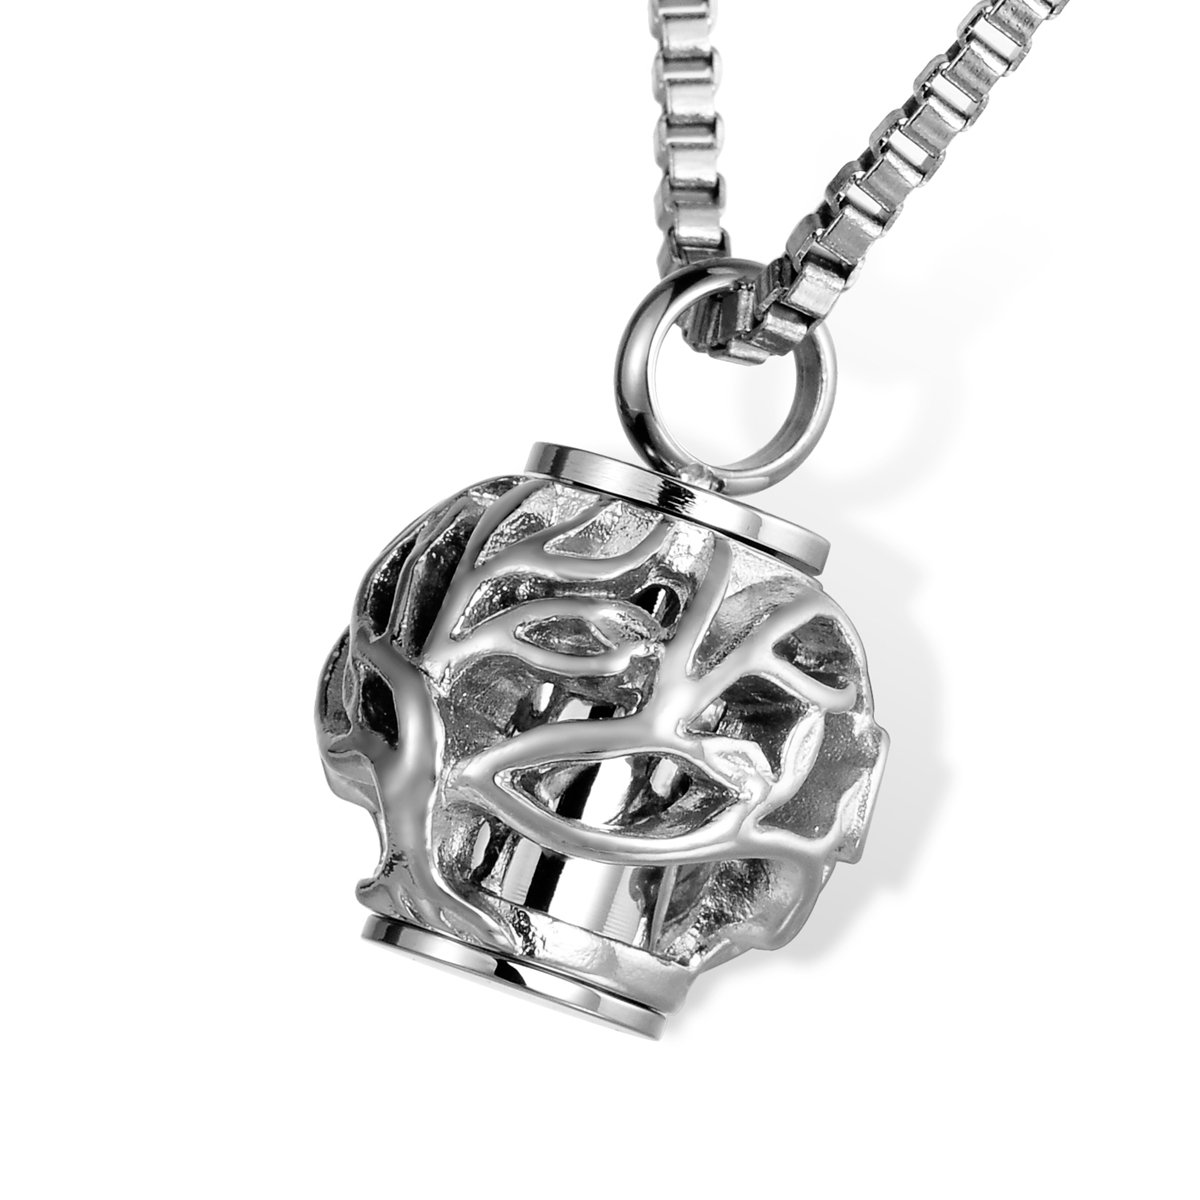 HOUSWEETY Cremation Jewelry Hollow Heart Tree of life Bead Urn Pendant Necklace Memorial Ashes Keepsake HOUSWEETYKLB103418